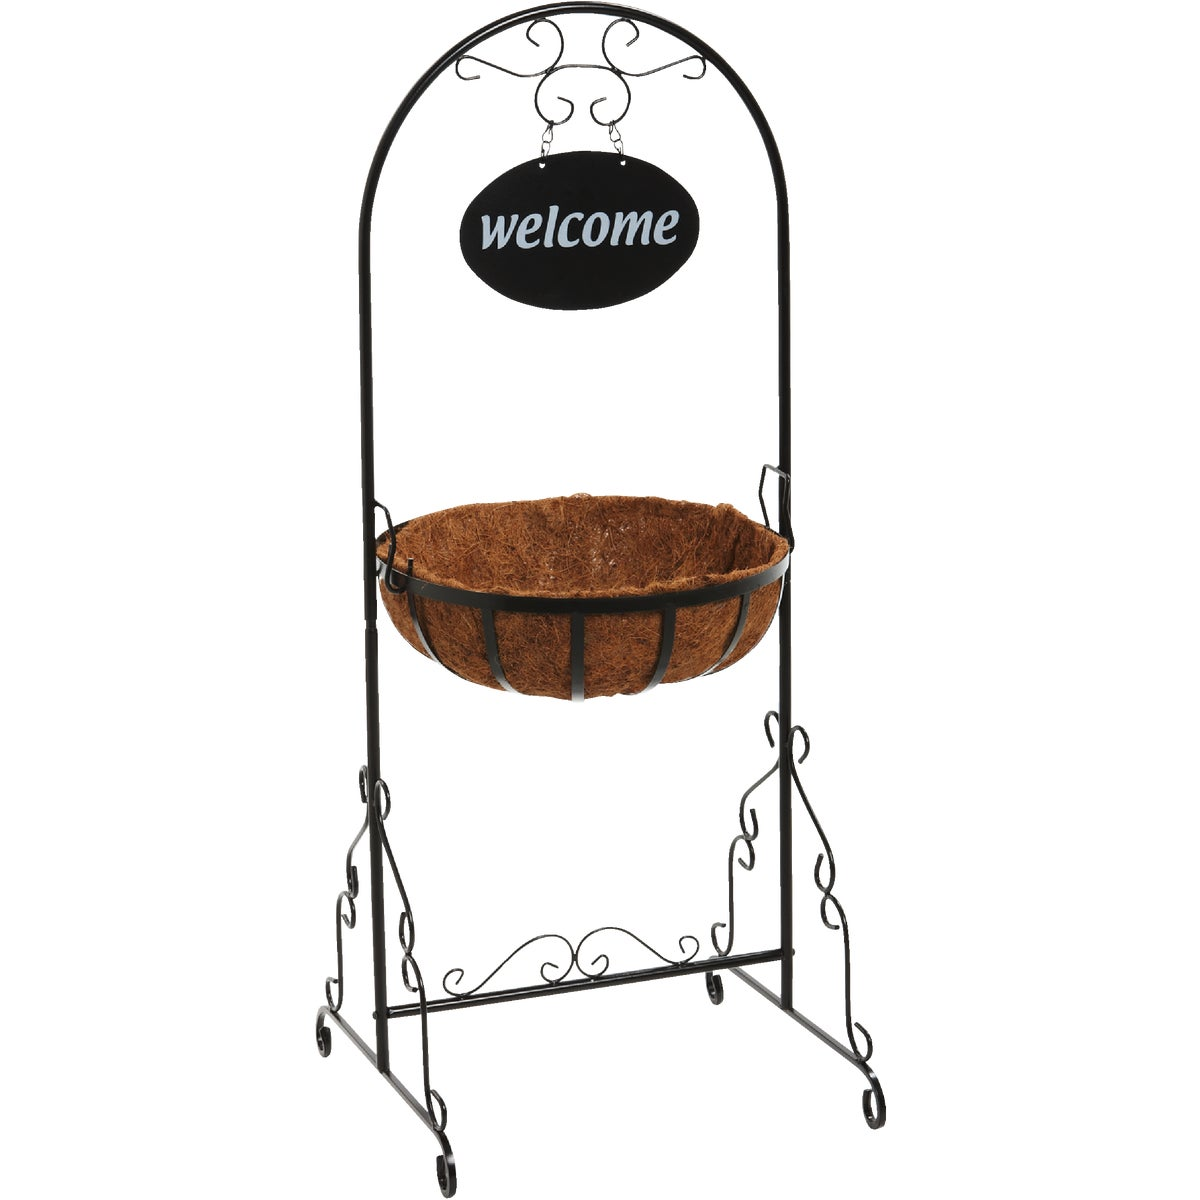 WELCOME PLANTER - FP1110 by Do it Best